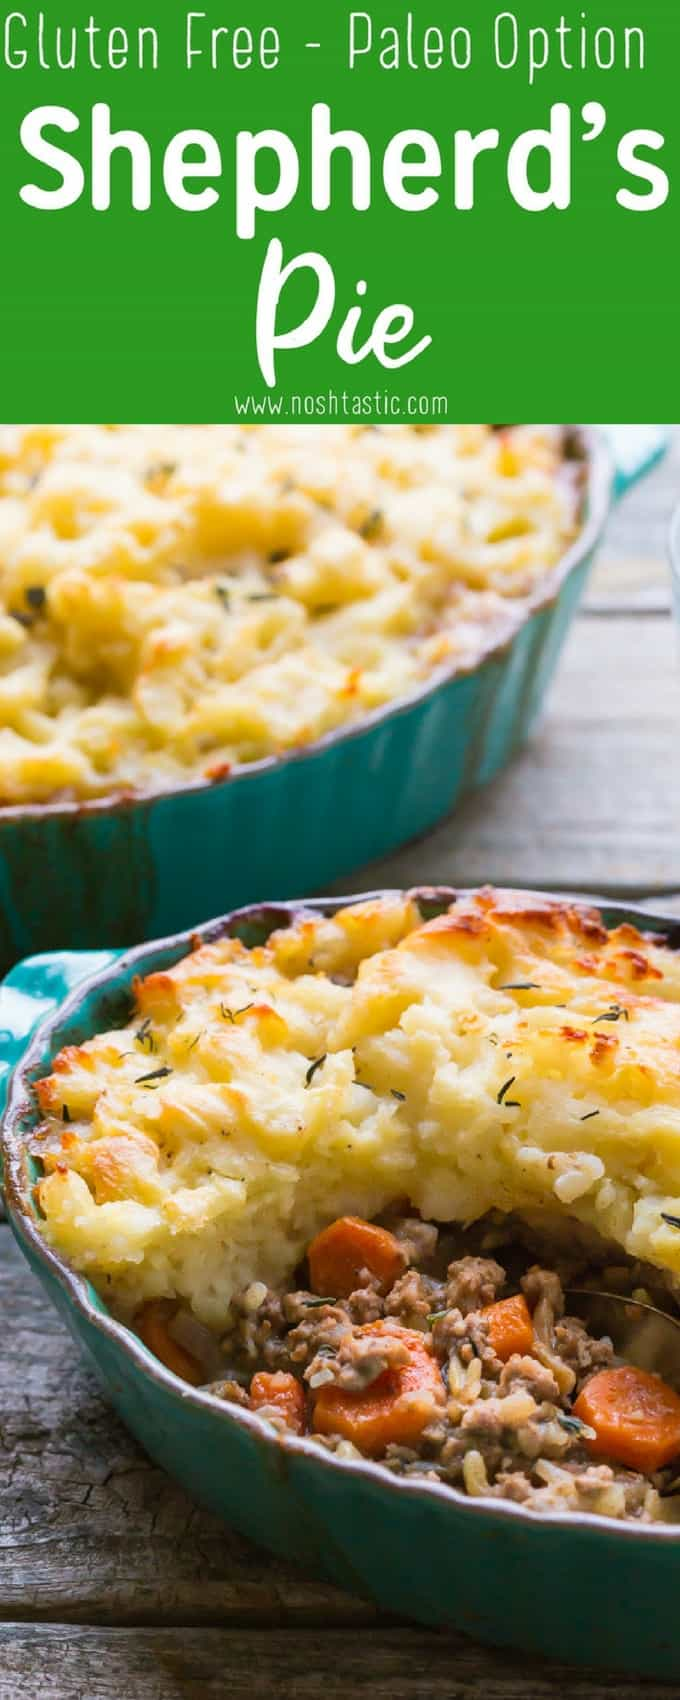 Gluten Free Shepherds Pie is a classic British dish traditionally made with lamb, but you can make it with ground beef if you prefer!  it's Low carb, gluten free and with Paleo and Whole30 options.